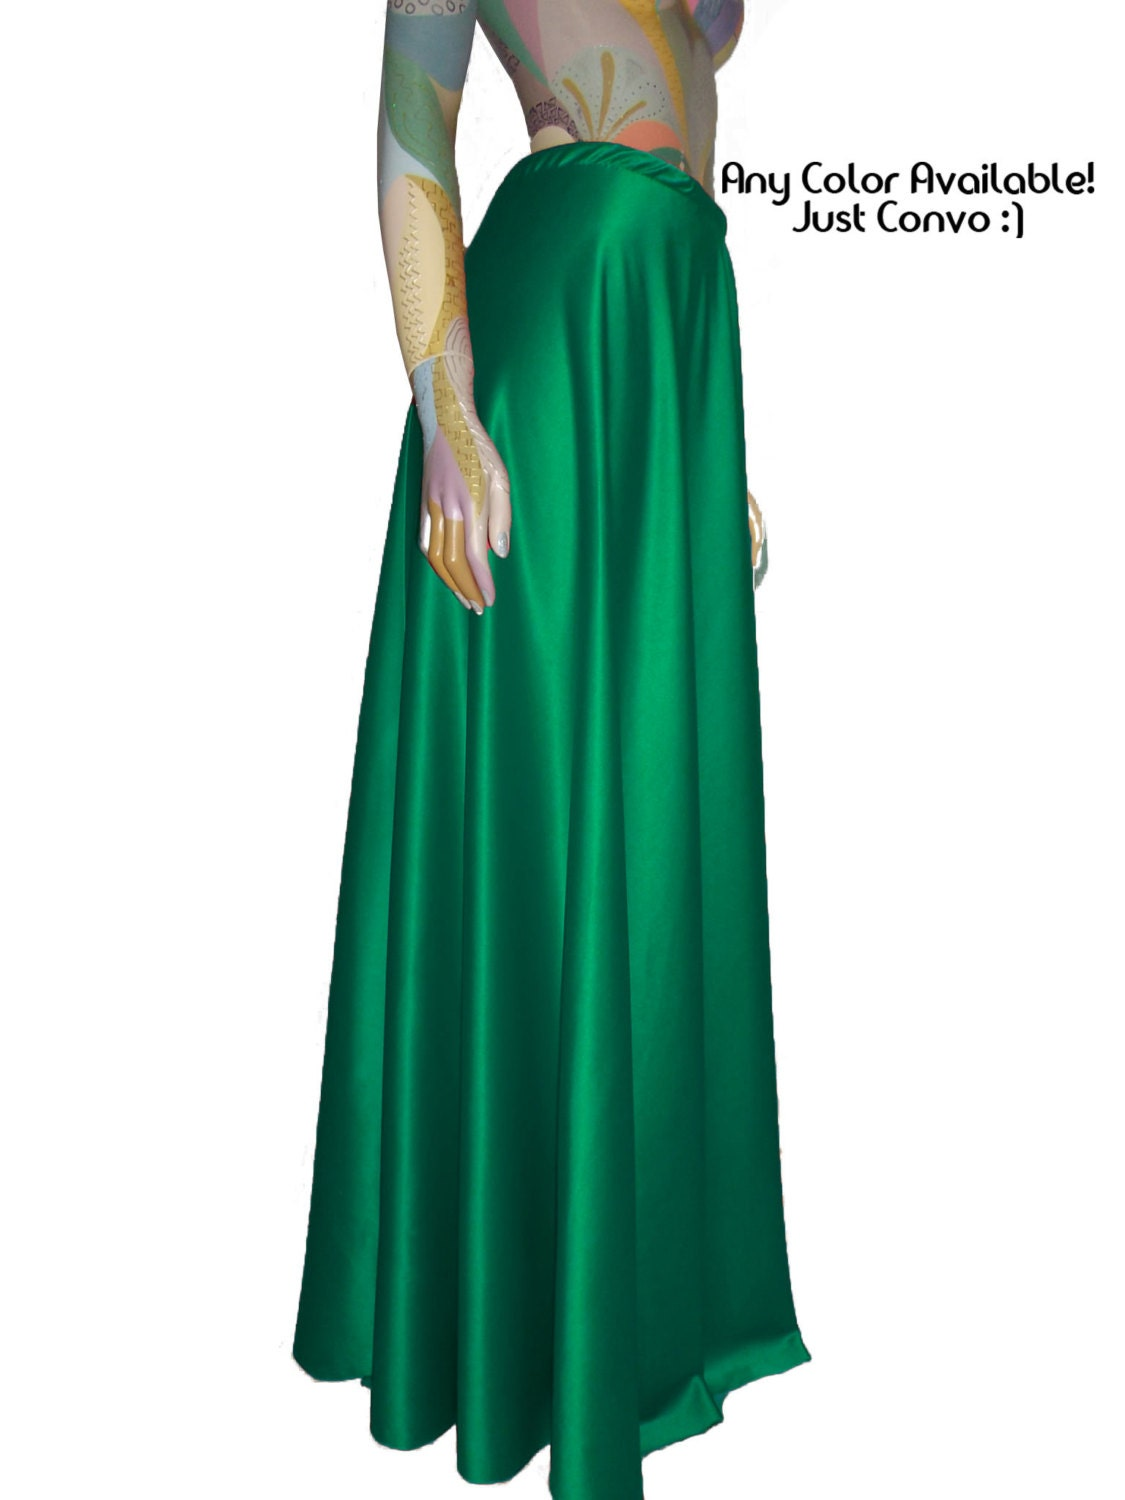 Maxi Satin Skirt Green Flowy Full Length Formal Party Skirt XS